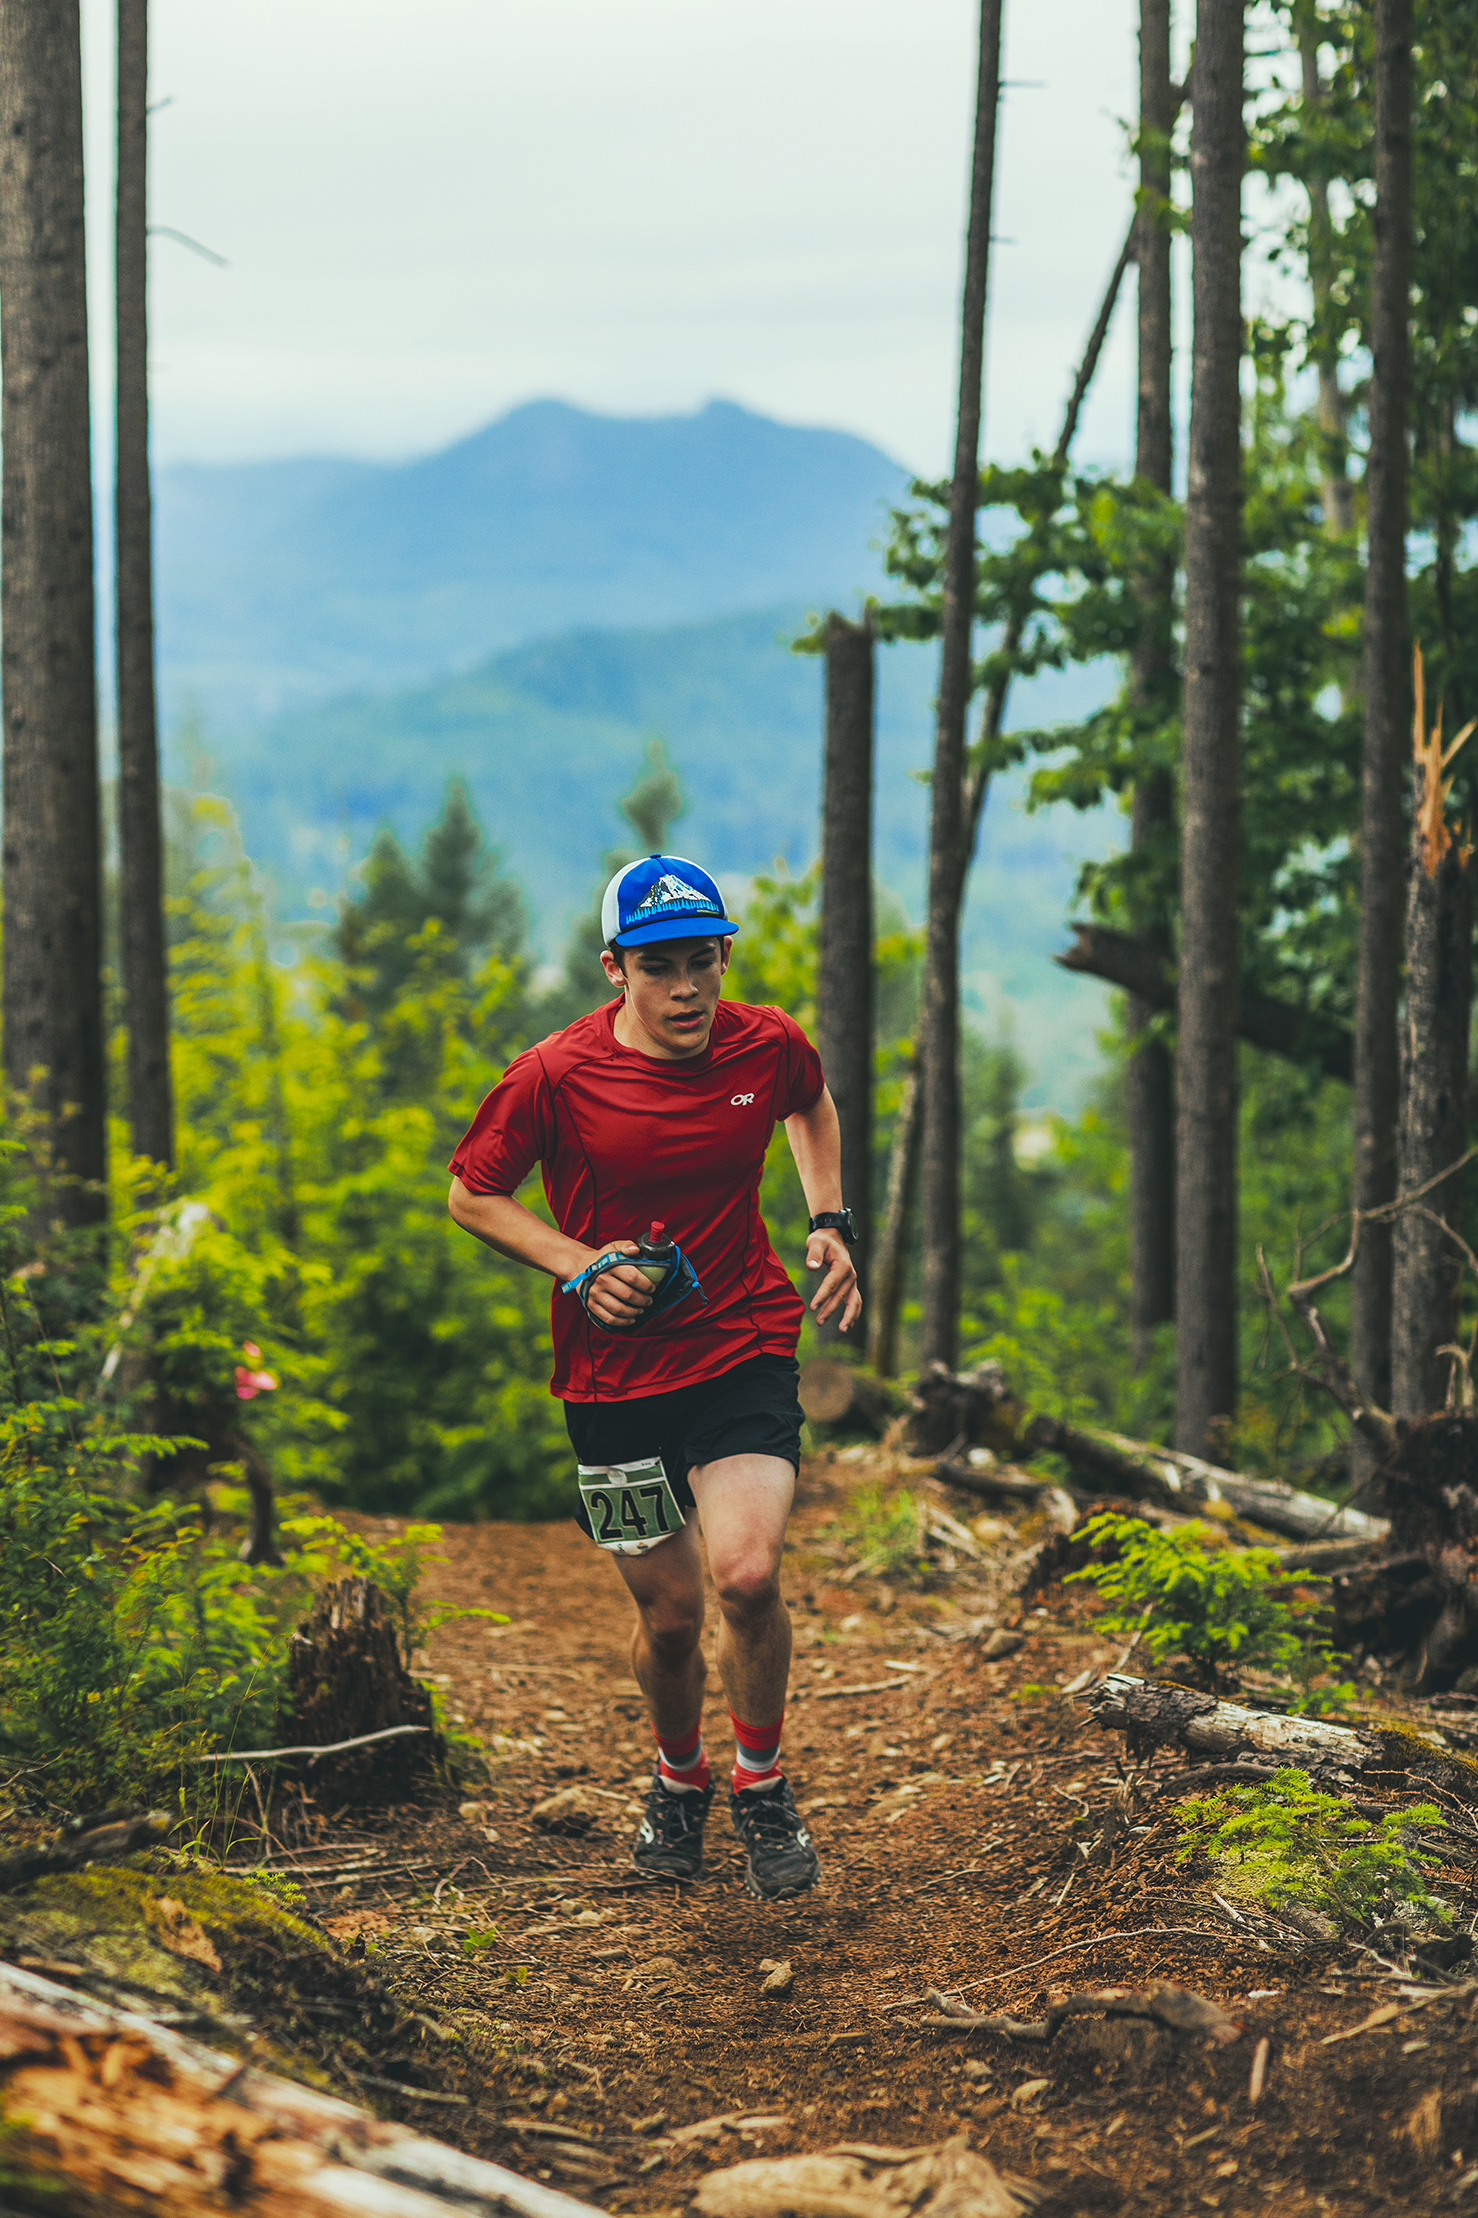 Fraser Valley Trail Races - Bear Mountain - IMG_1653 by Brice Ferre Studio - Vancouver Portrait Adventure and Athlete Photographer.jpg